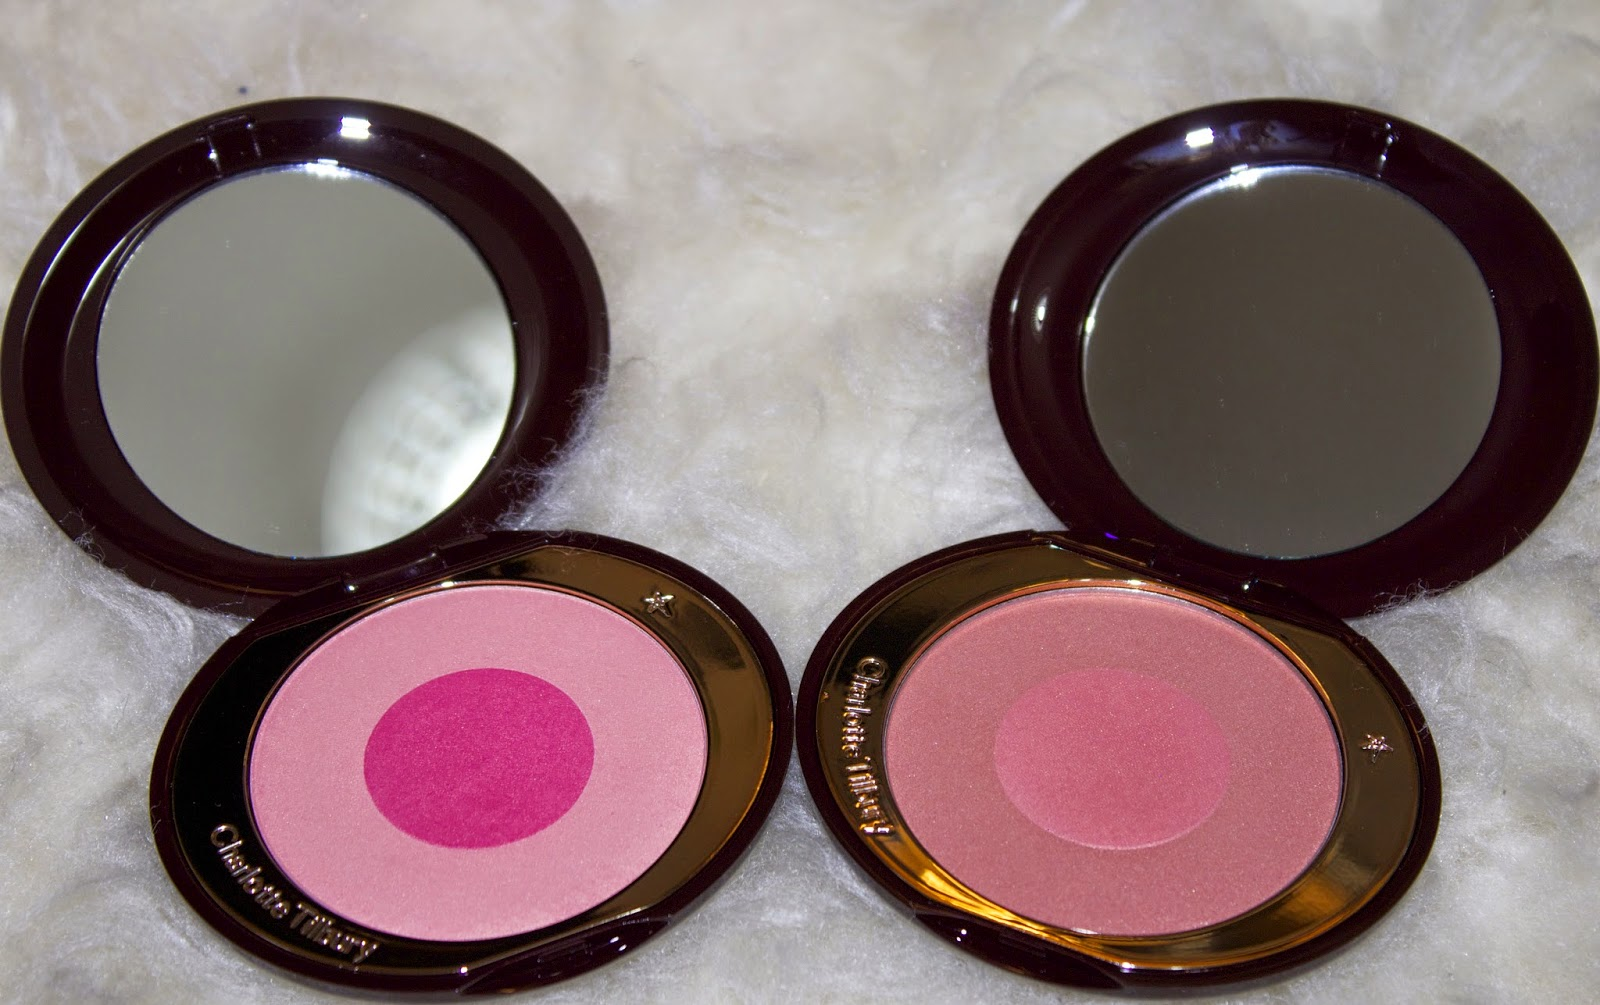 a picture of Charlotte Tilbury Swirl & Pop Blushers - Love Is The Drug & Ecstasy